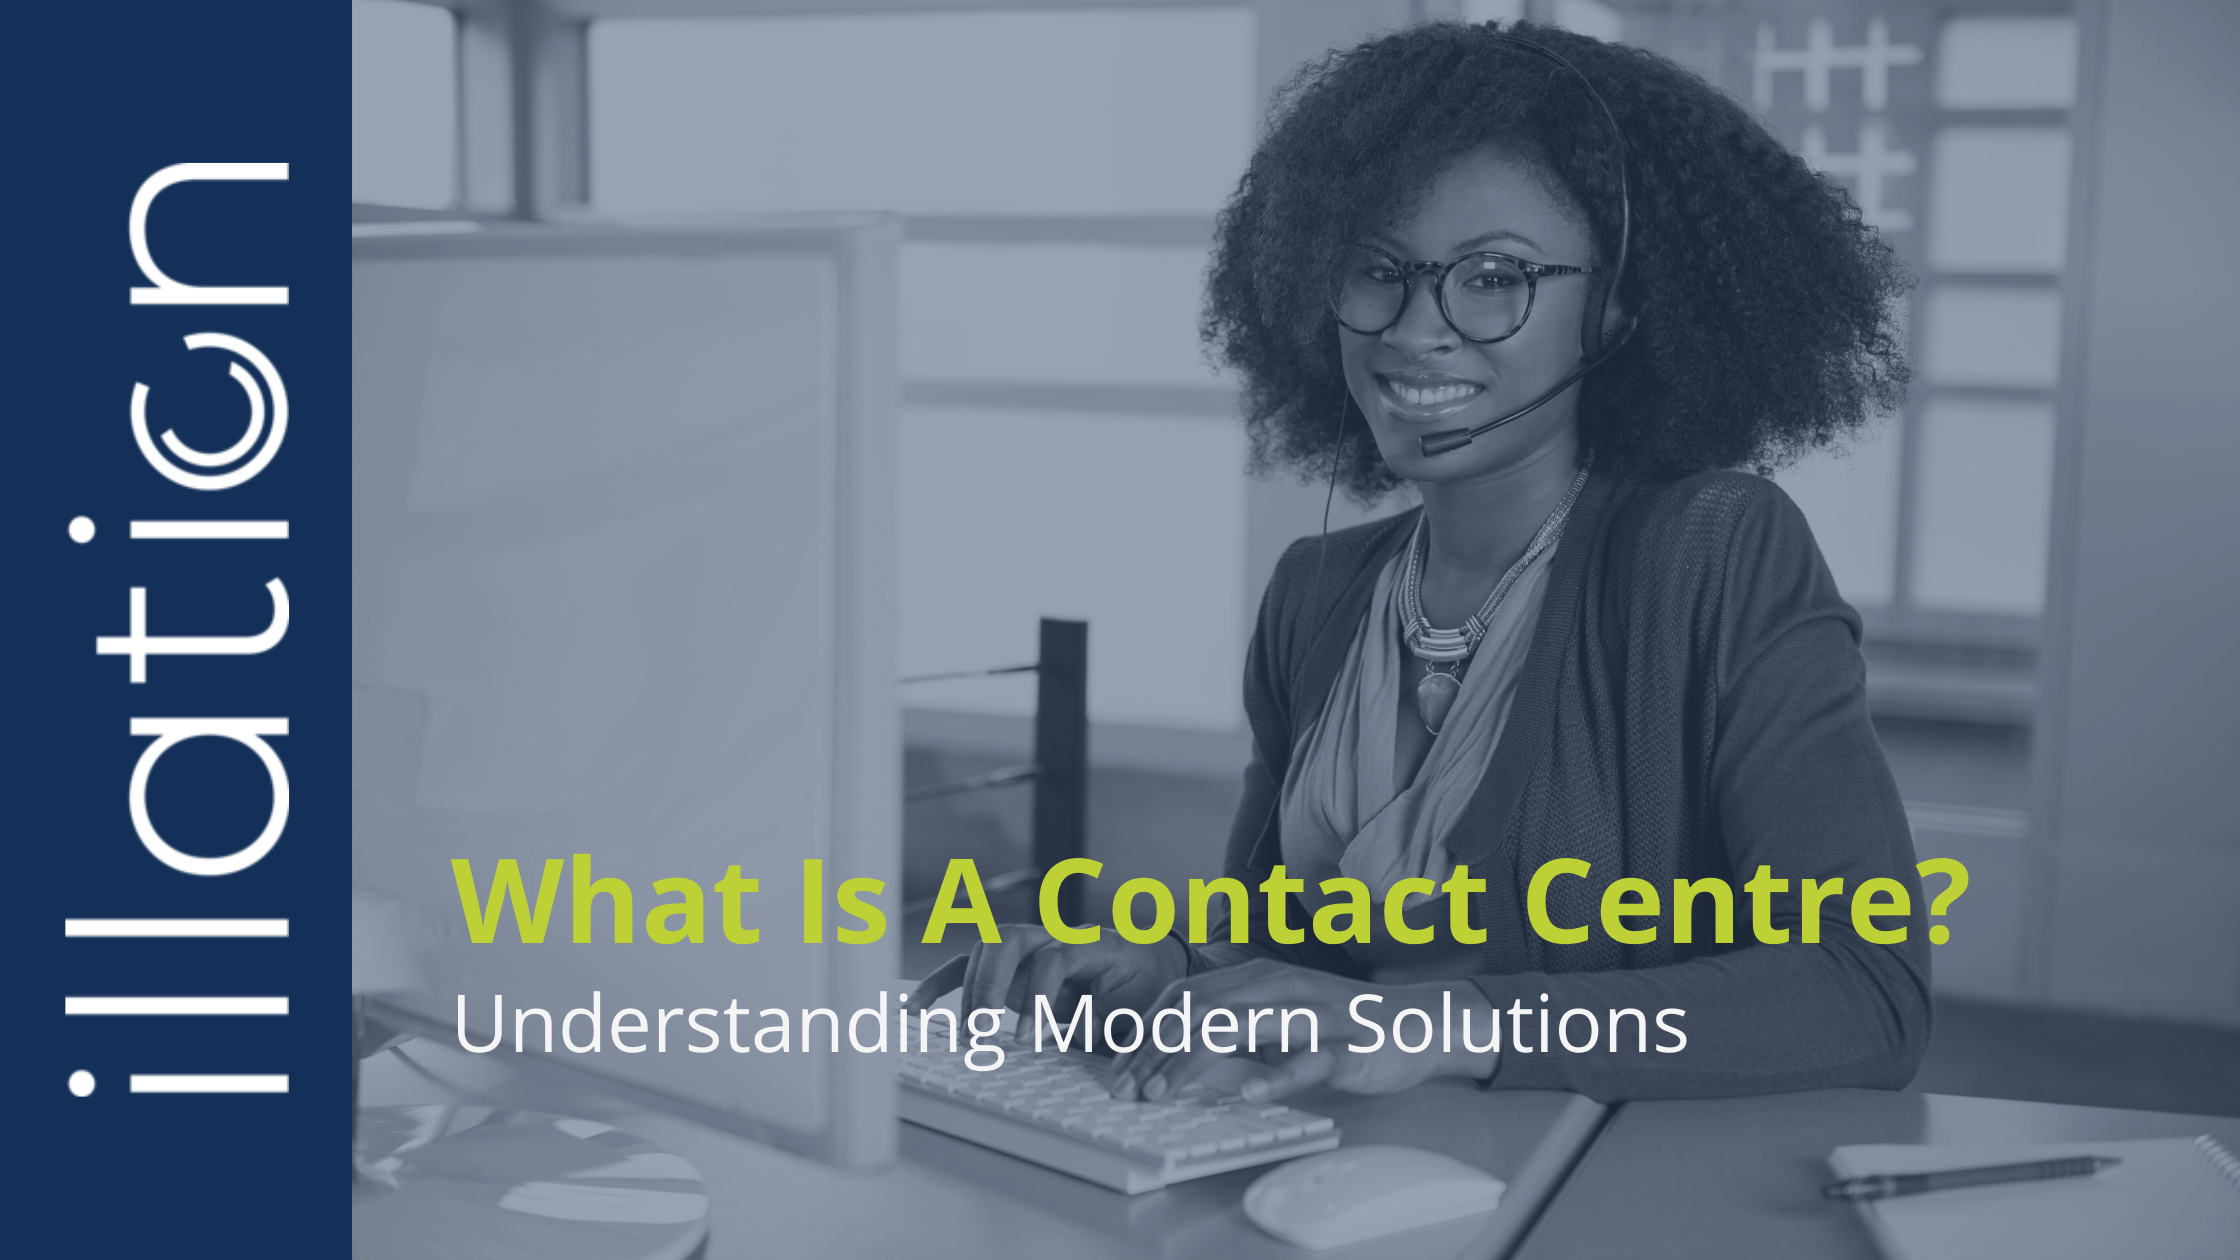 Contact Centres vs Call Centres: What Is A Contact Centre?